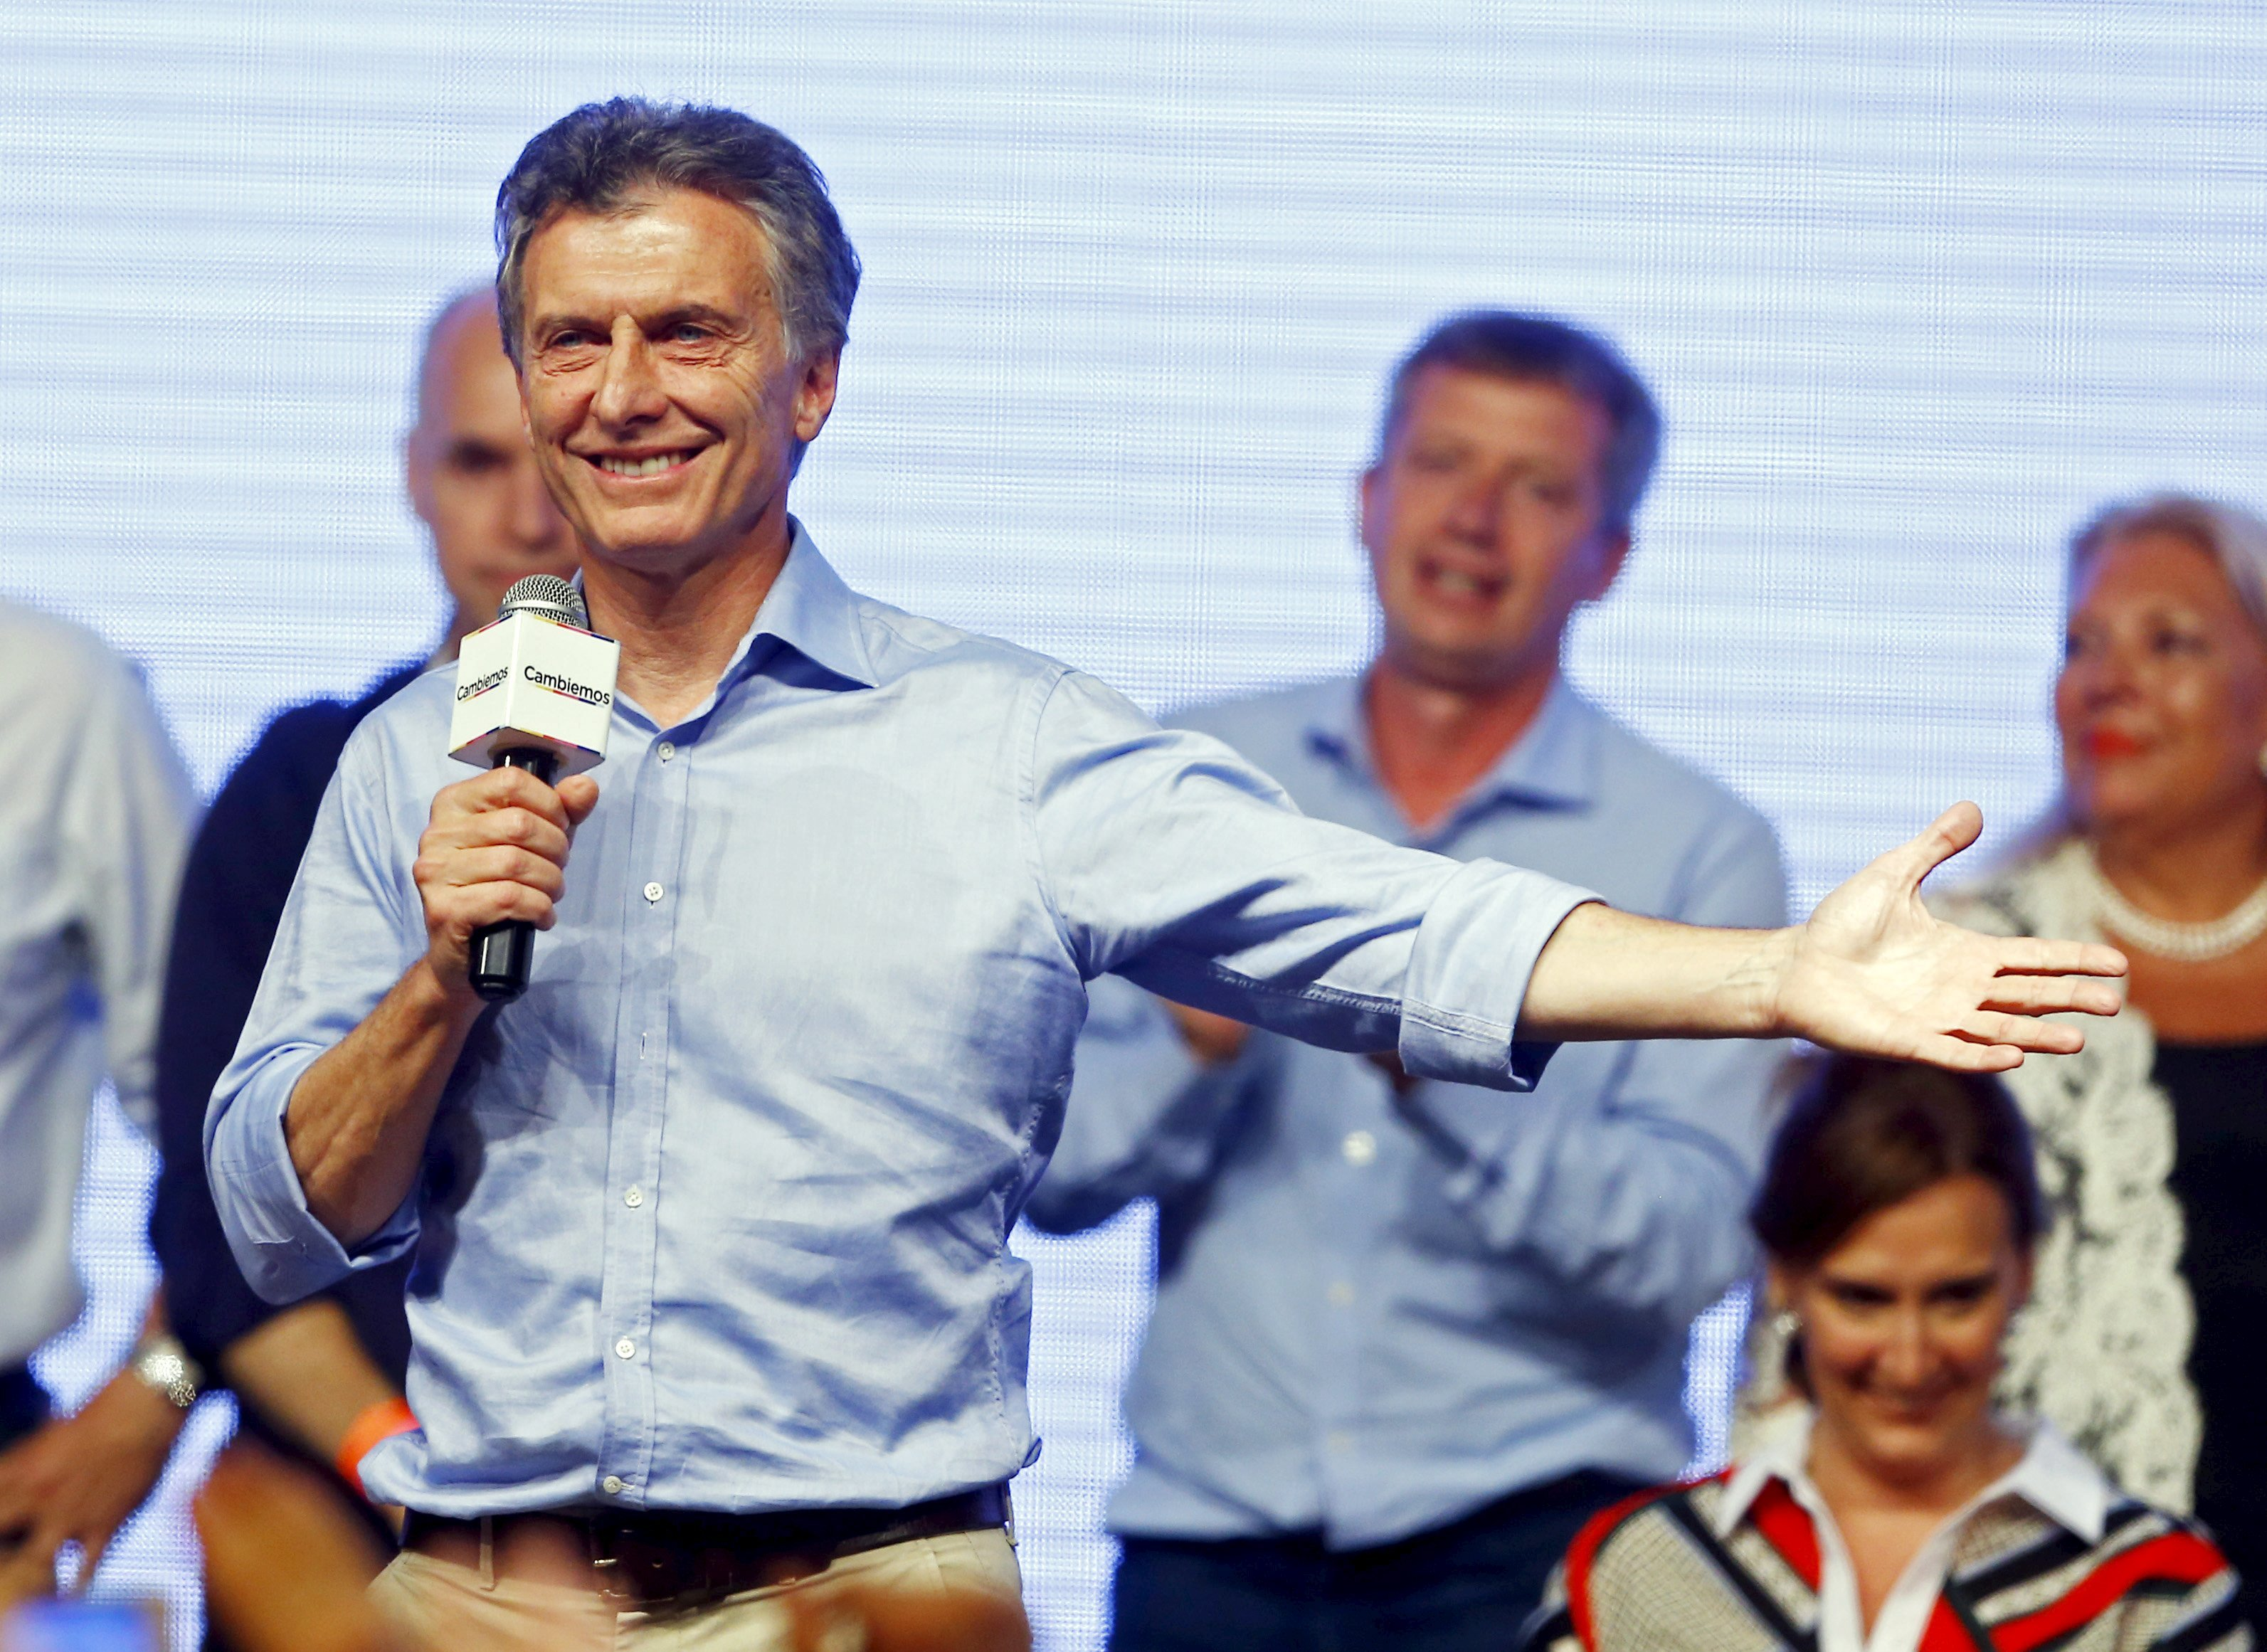 Mauricio Macri, presidential candidate of the Cambiemos coalition, speaks to his supporters after the presidential election in Buenos Aires, Argentina on Nov. 22, 2015.